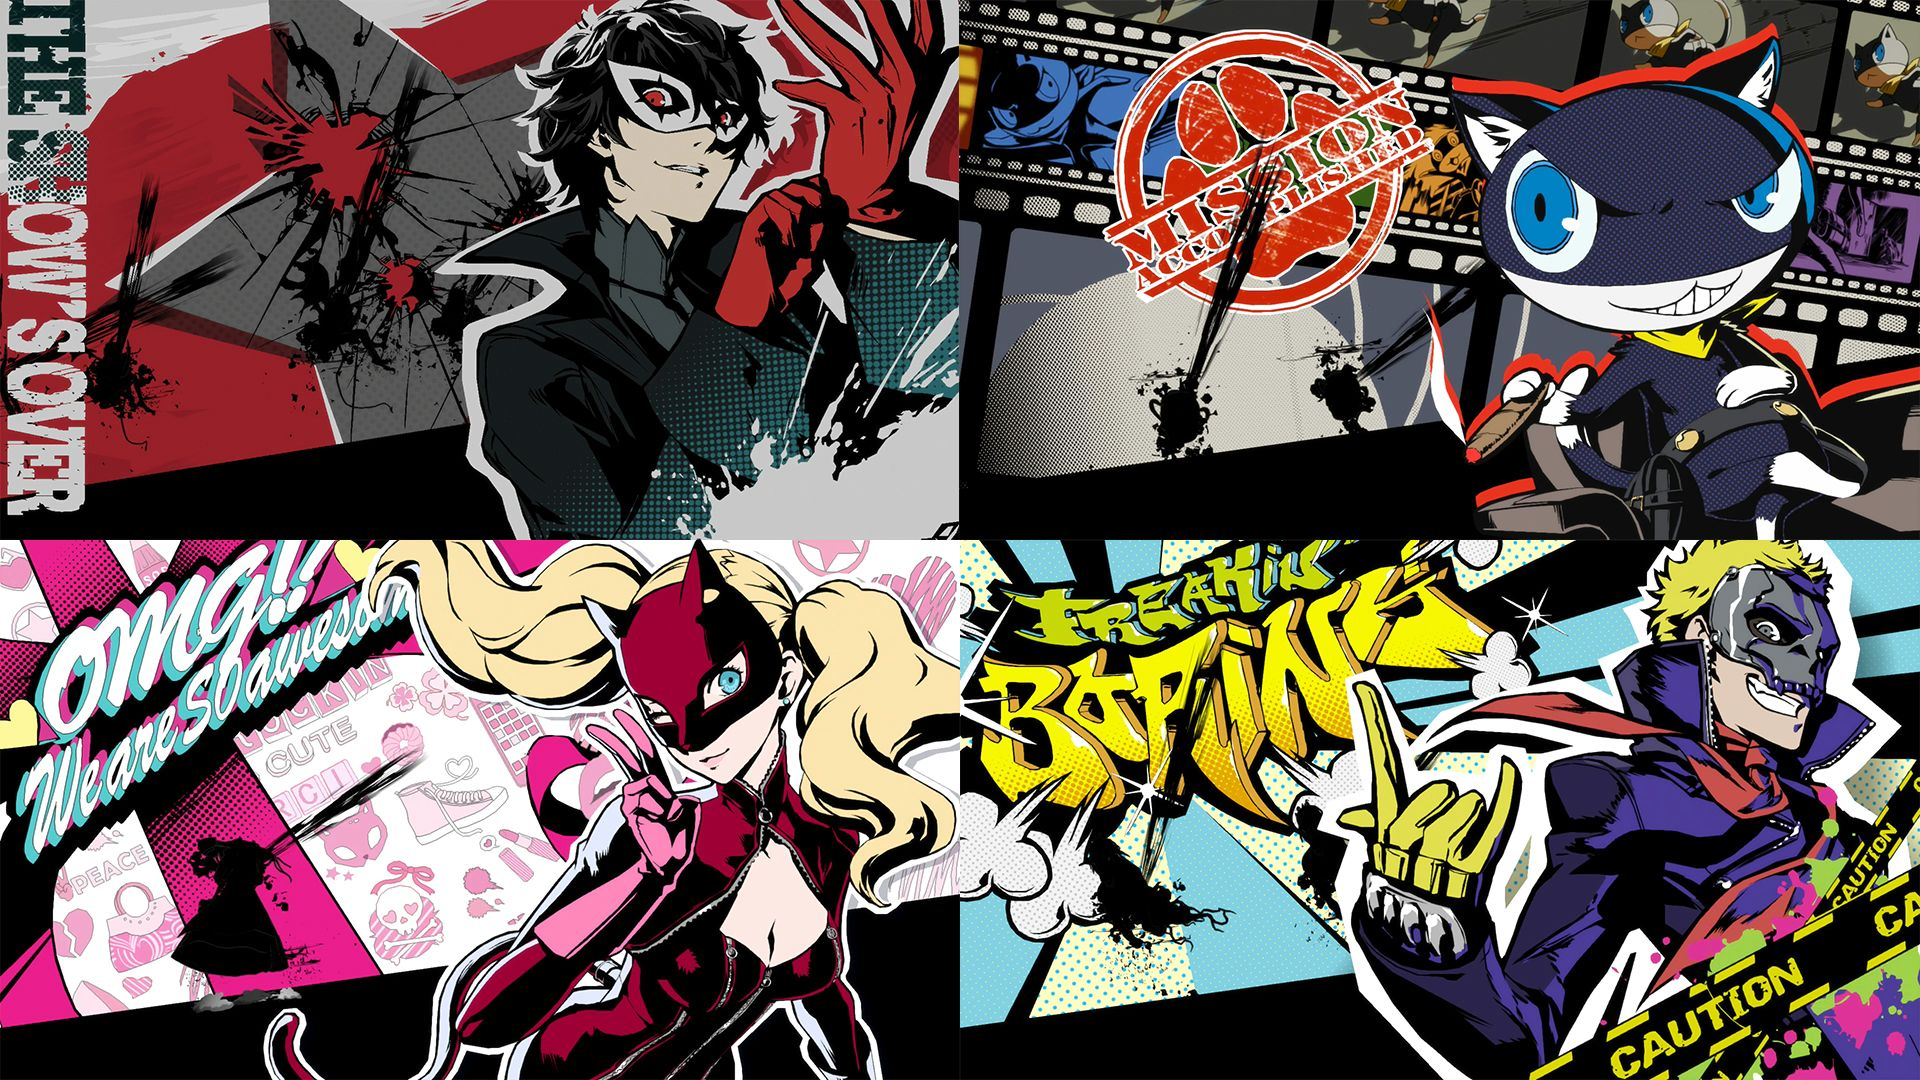 Persona 5 Review Persona 5, Persona, Reviews